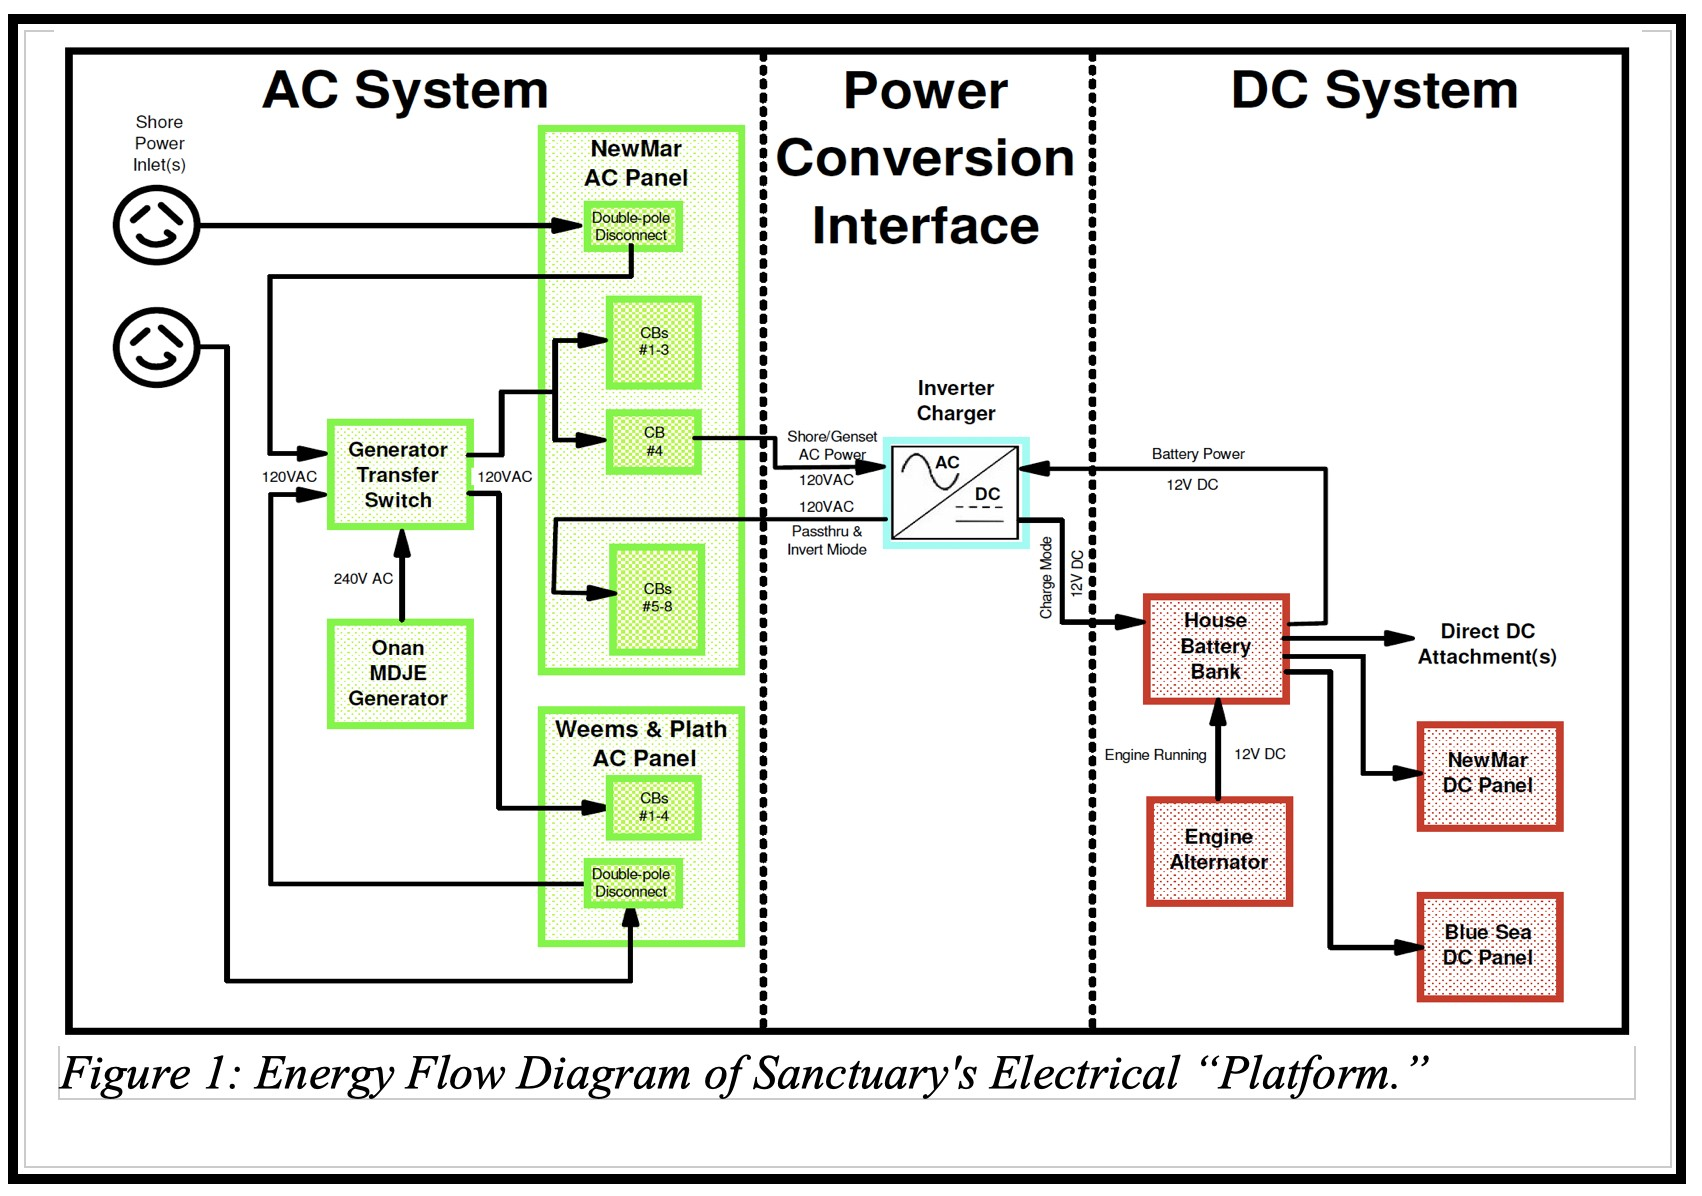 """Figure 1 shows Sanctuary s AC and DC electrical systems as a plete and integrated operational """"platform """" From the platform perspective owners can"""